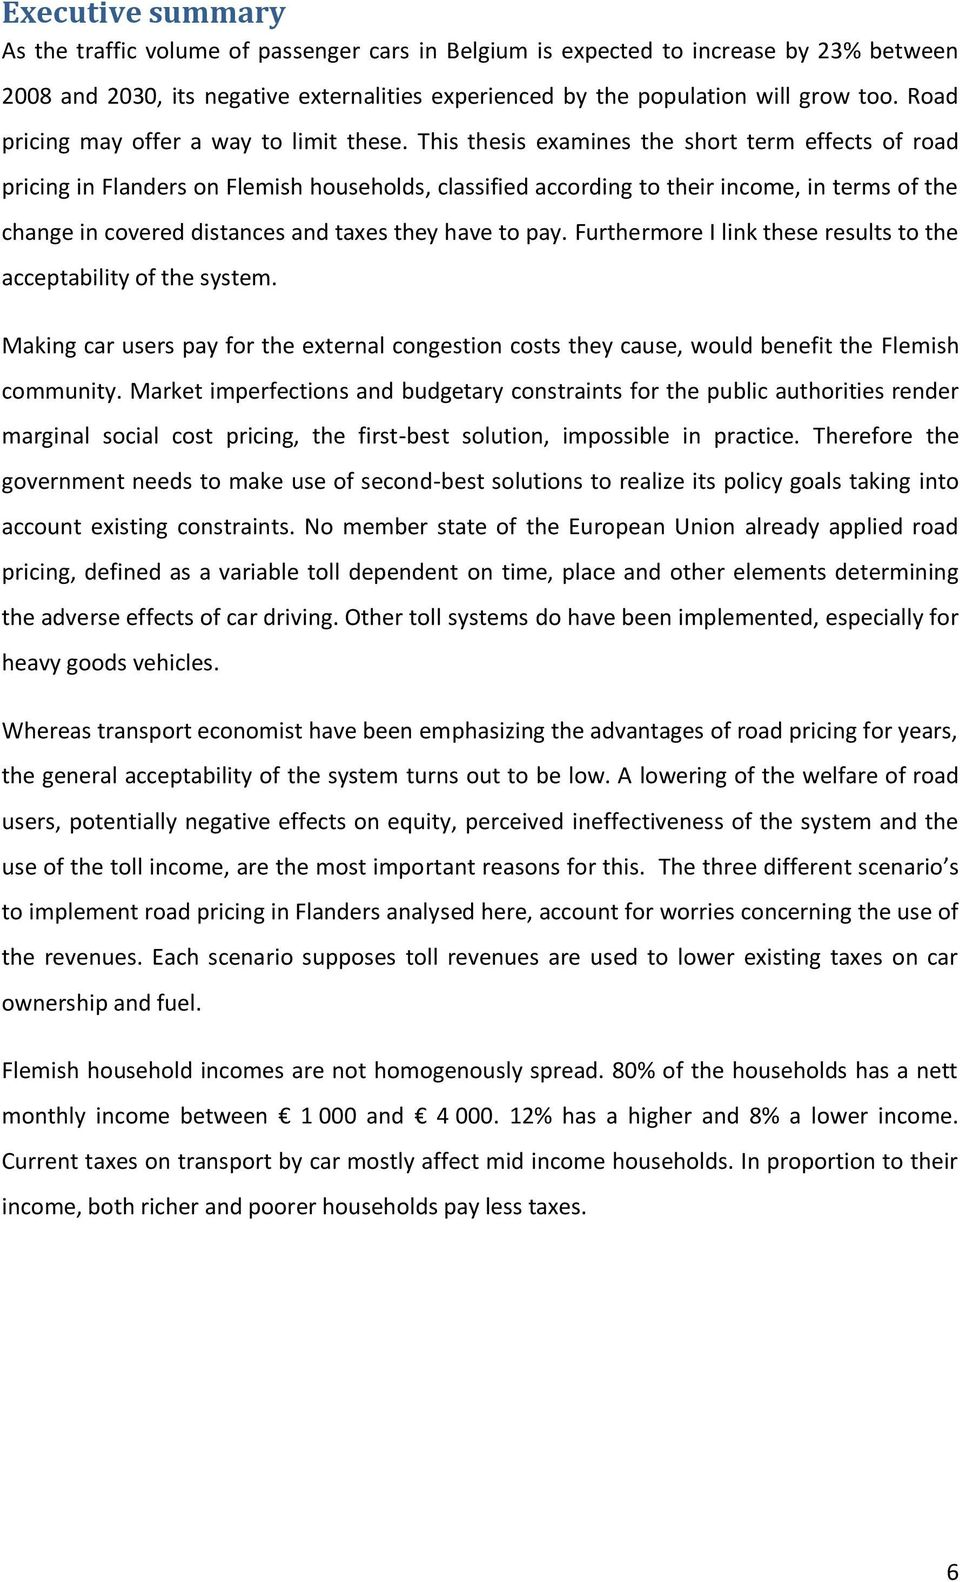 This thesis examines the short term effects of road pricing in Flanders on Flemish households, classified according to their income, in terms of the change in covered distances and taxes they have to